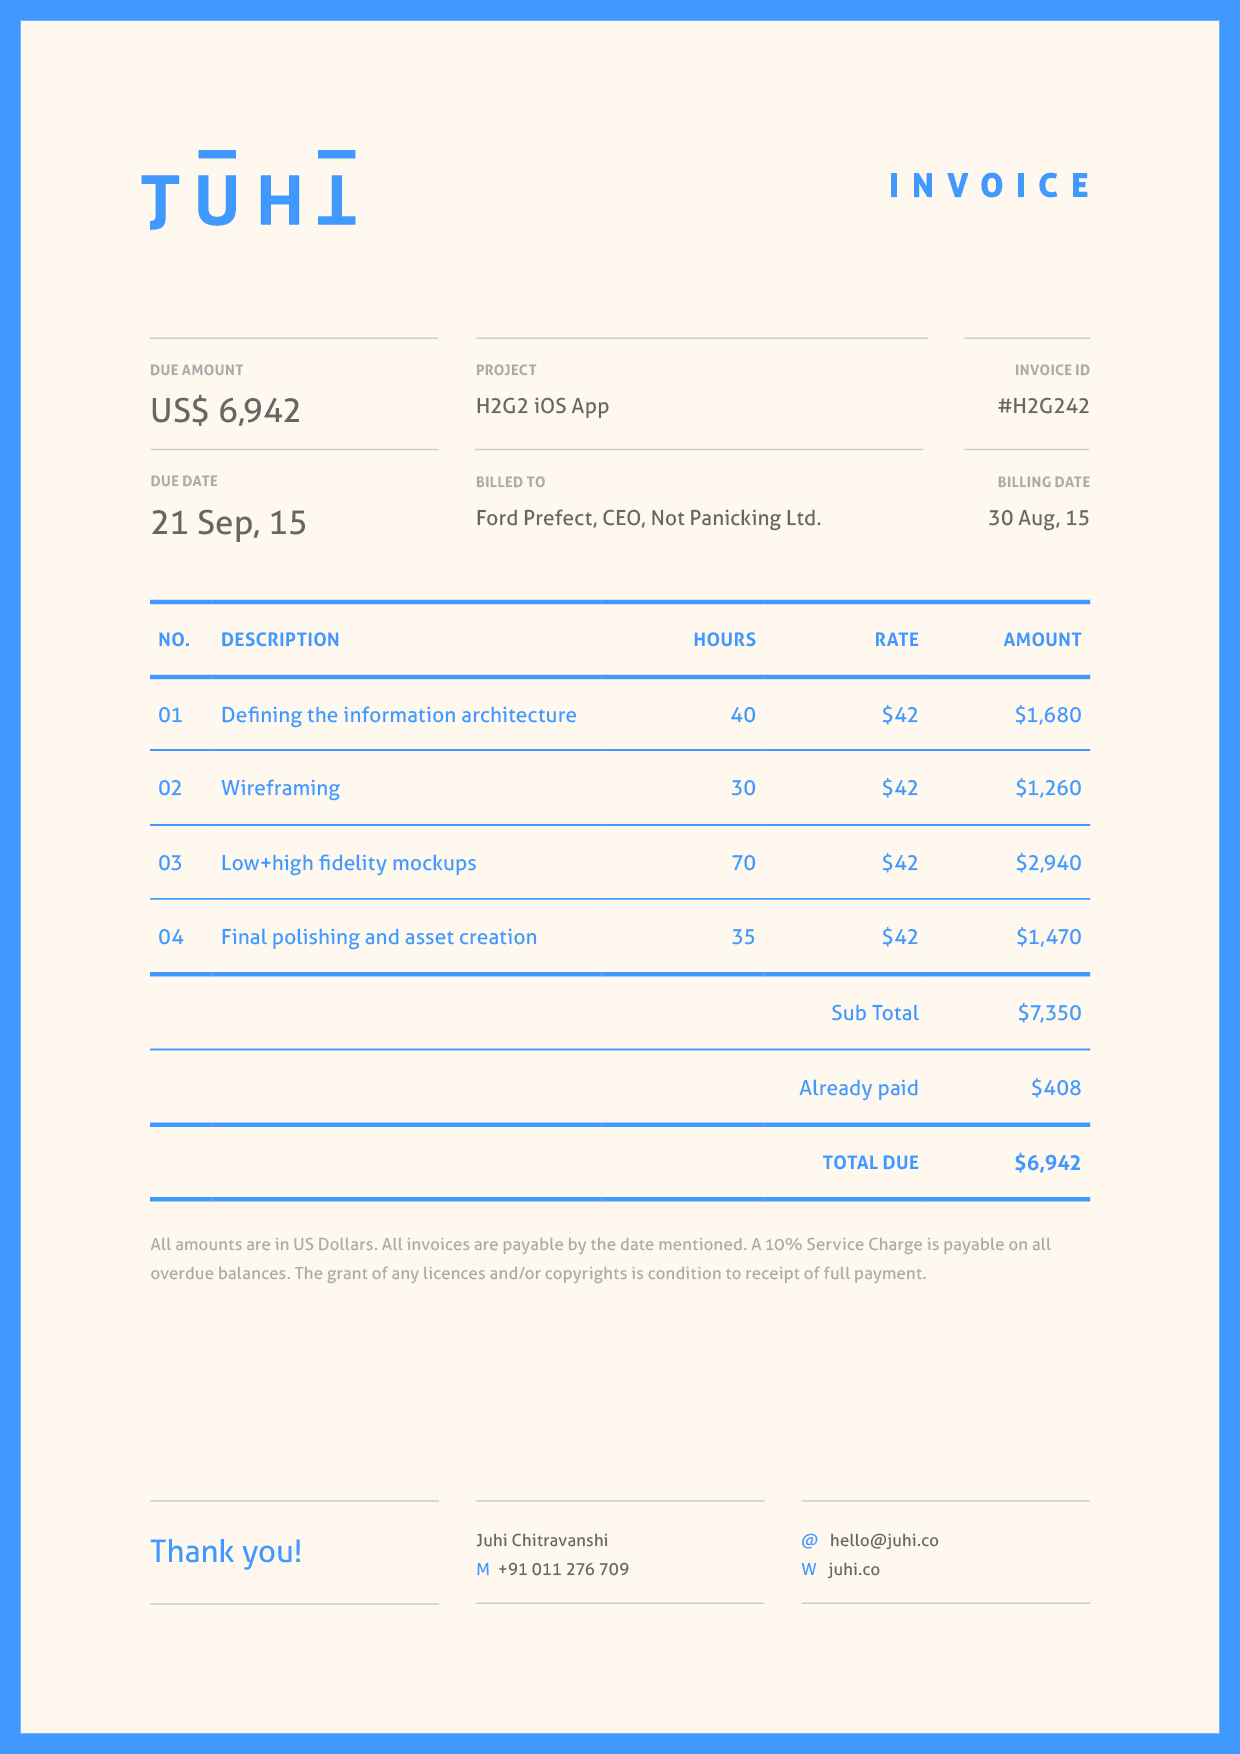 Pigbrotherus  Scenic Dont Hold Back On Your Invoice  Inspiring Designs  With Licious Invoice By Juhi Chitravanshi Follow With Agreeable Printable Blank Invoice Also Proforma Invoice Fedex In Addition Hotel Invoice And Invoice Means As Well As Free Word Invoice Template Additionally Microsoft Invoice From Inspirationfeedcom With Pigbrotherus  Licious Dont Hold Back On Your Invoice  Inspiring Designs  With Agreeable Invoice By Juhi Chitravanshi Follow And Scenic Printable Blank Invoice Also Proforma Invoice Fedex In Addition Hotel Invoice From Inspirationfeedcom